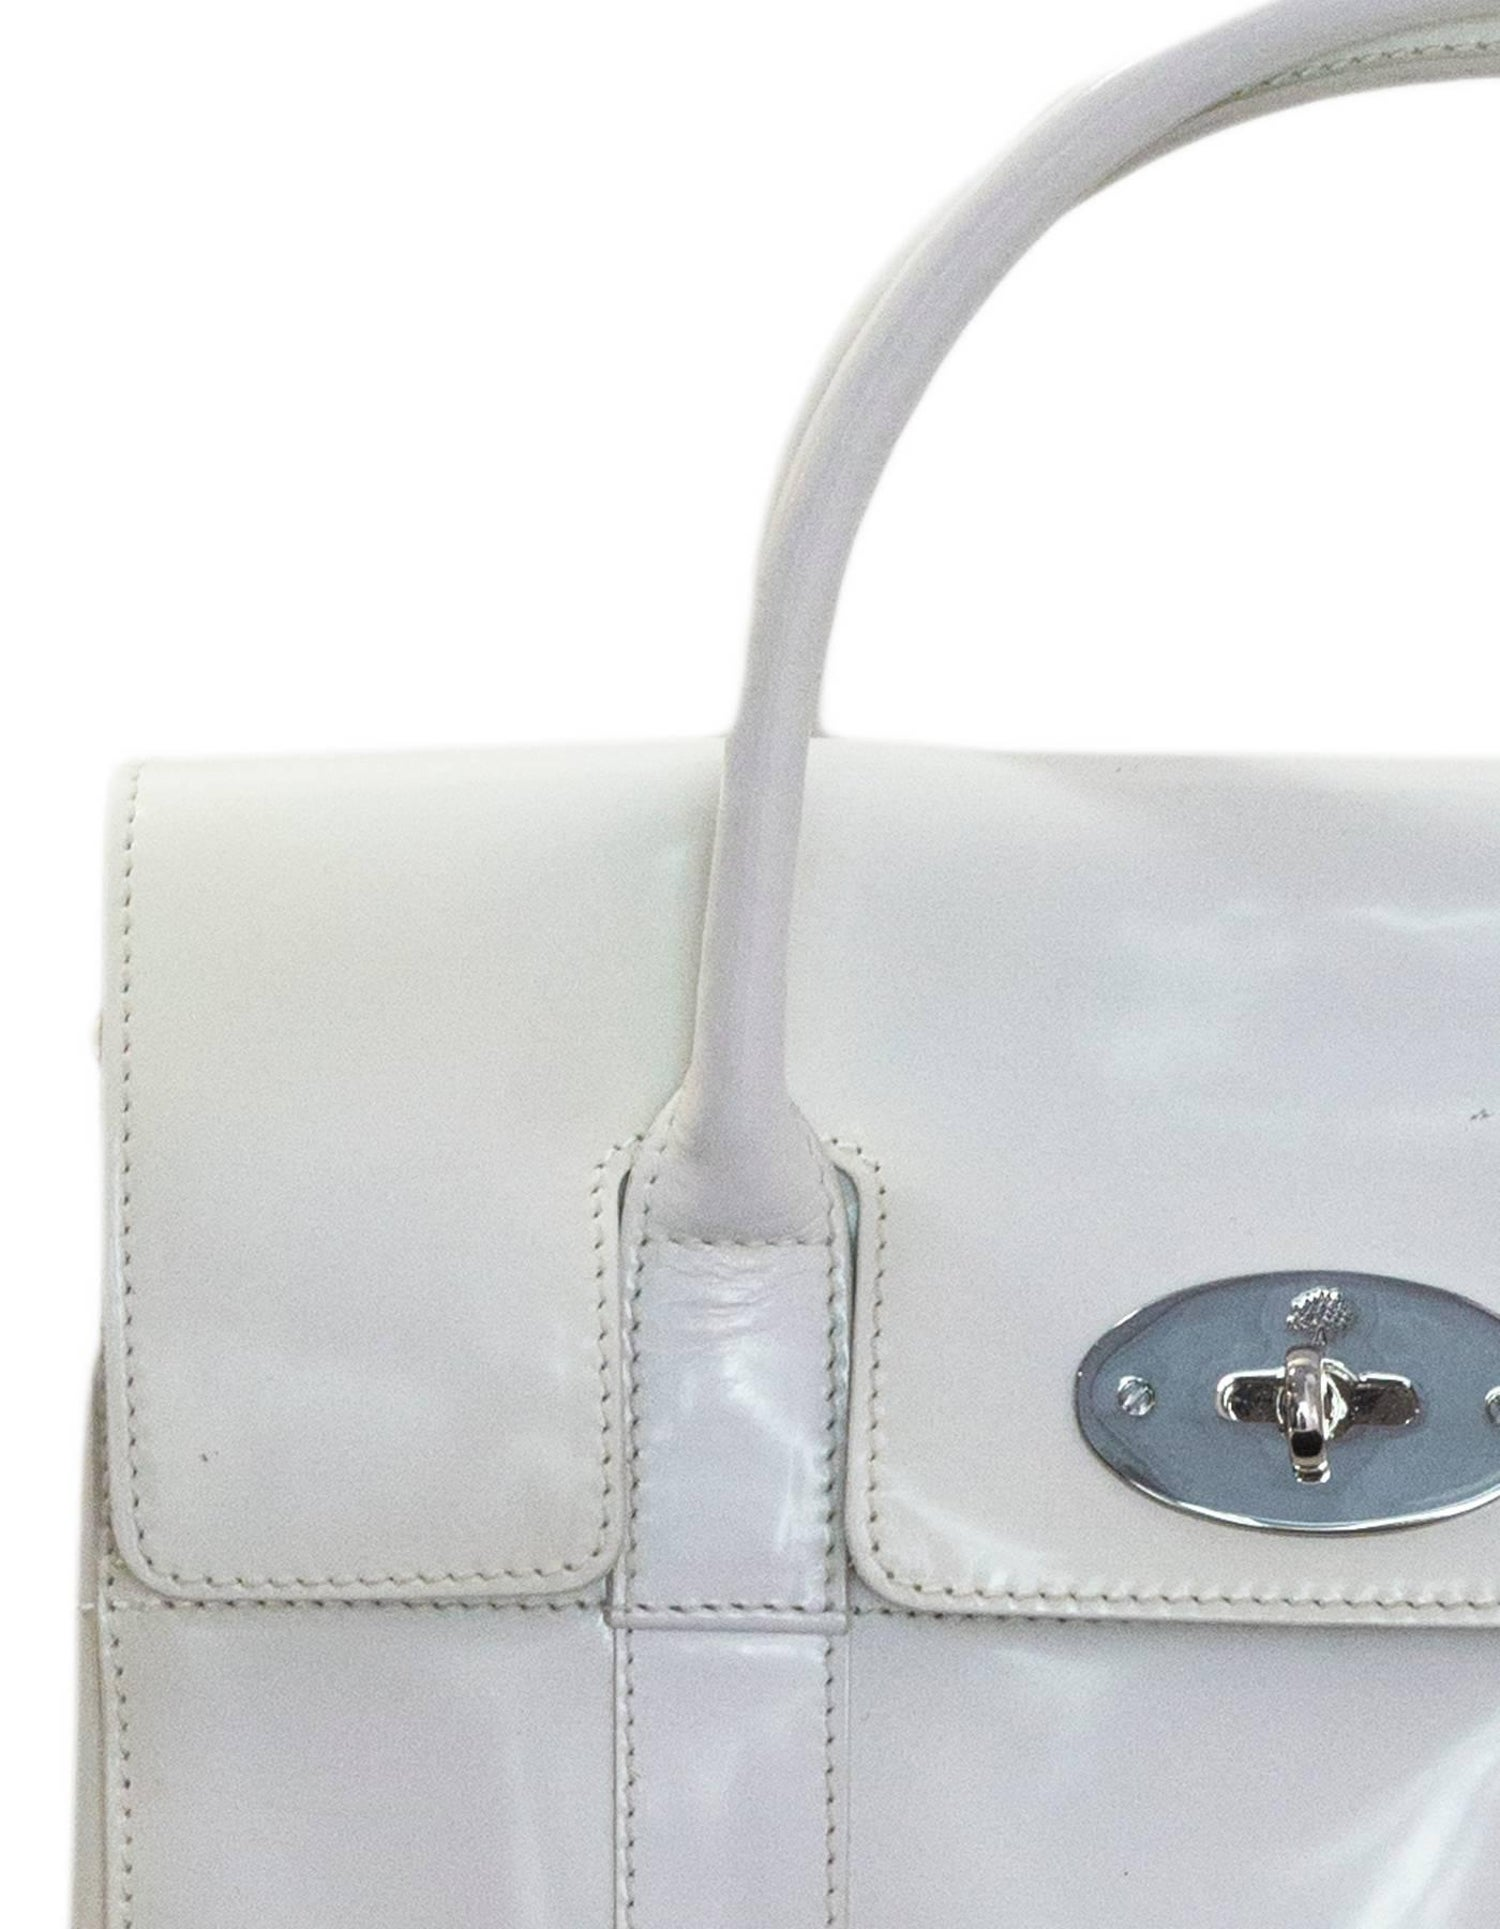 190cc65de5 Mulberry White Patent Leather Small Bayswater Bag with Dust Bag at 1stdibs